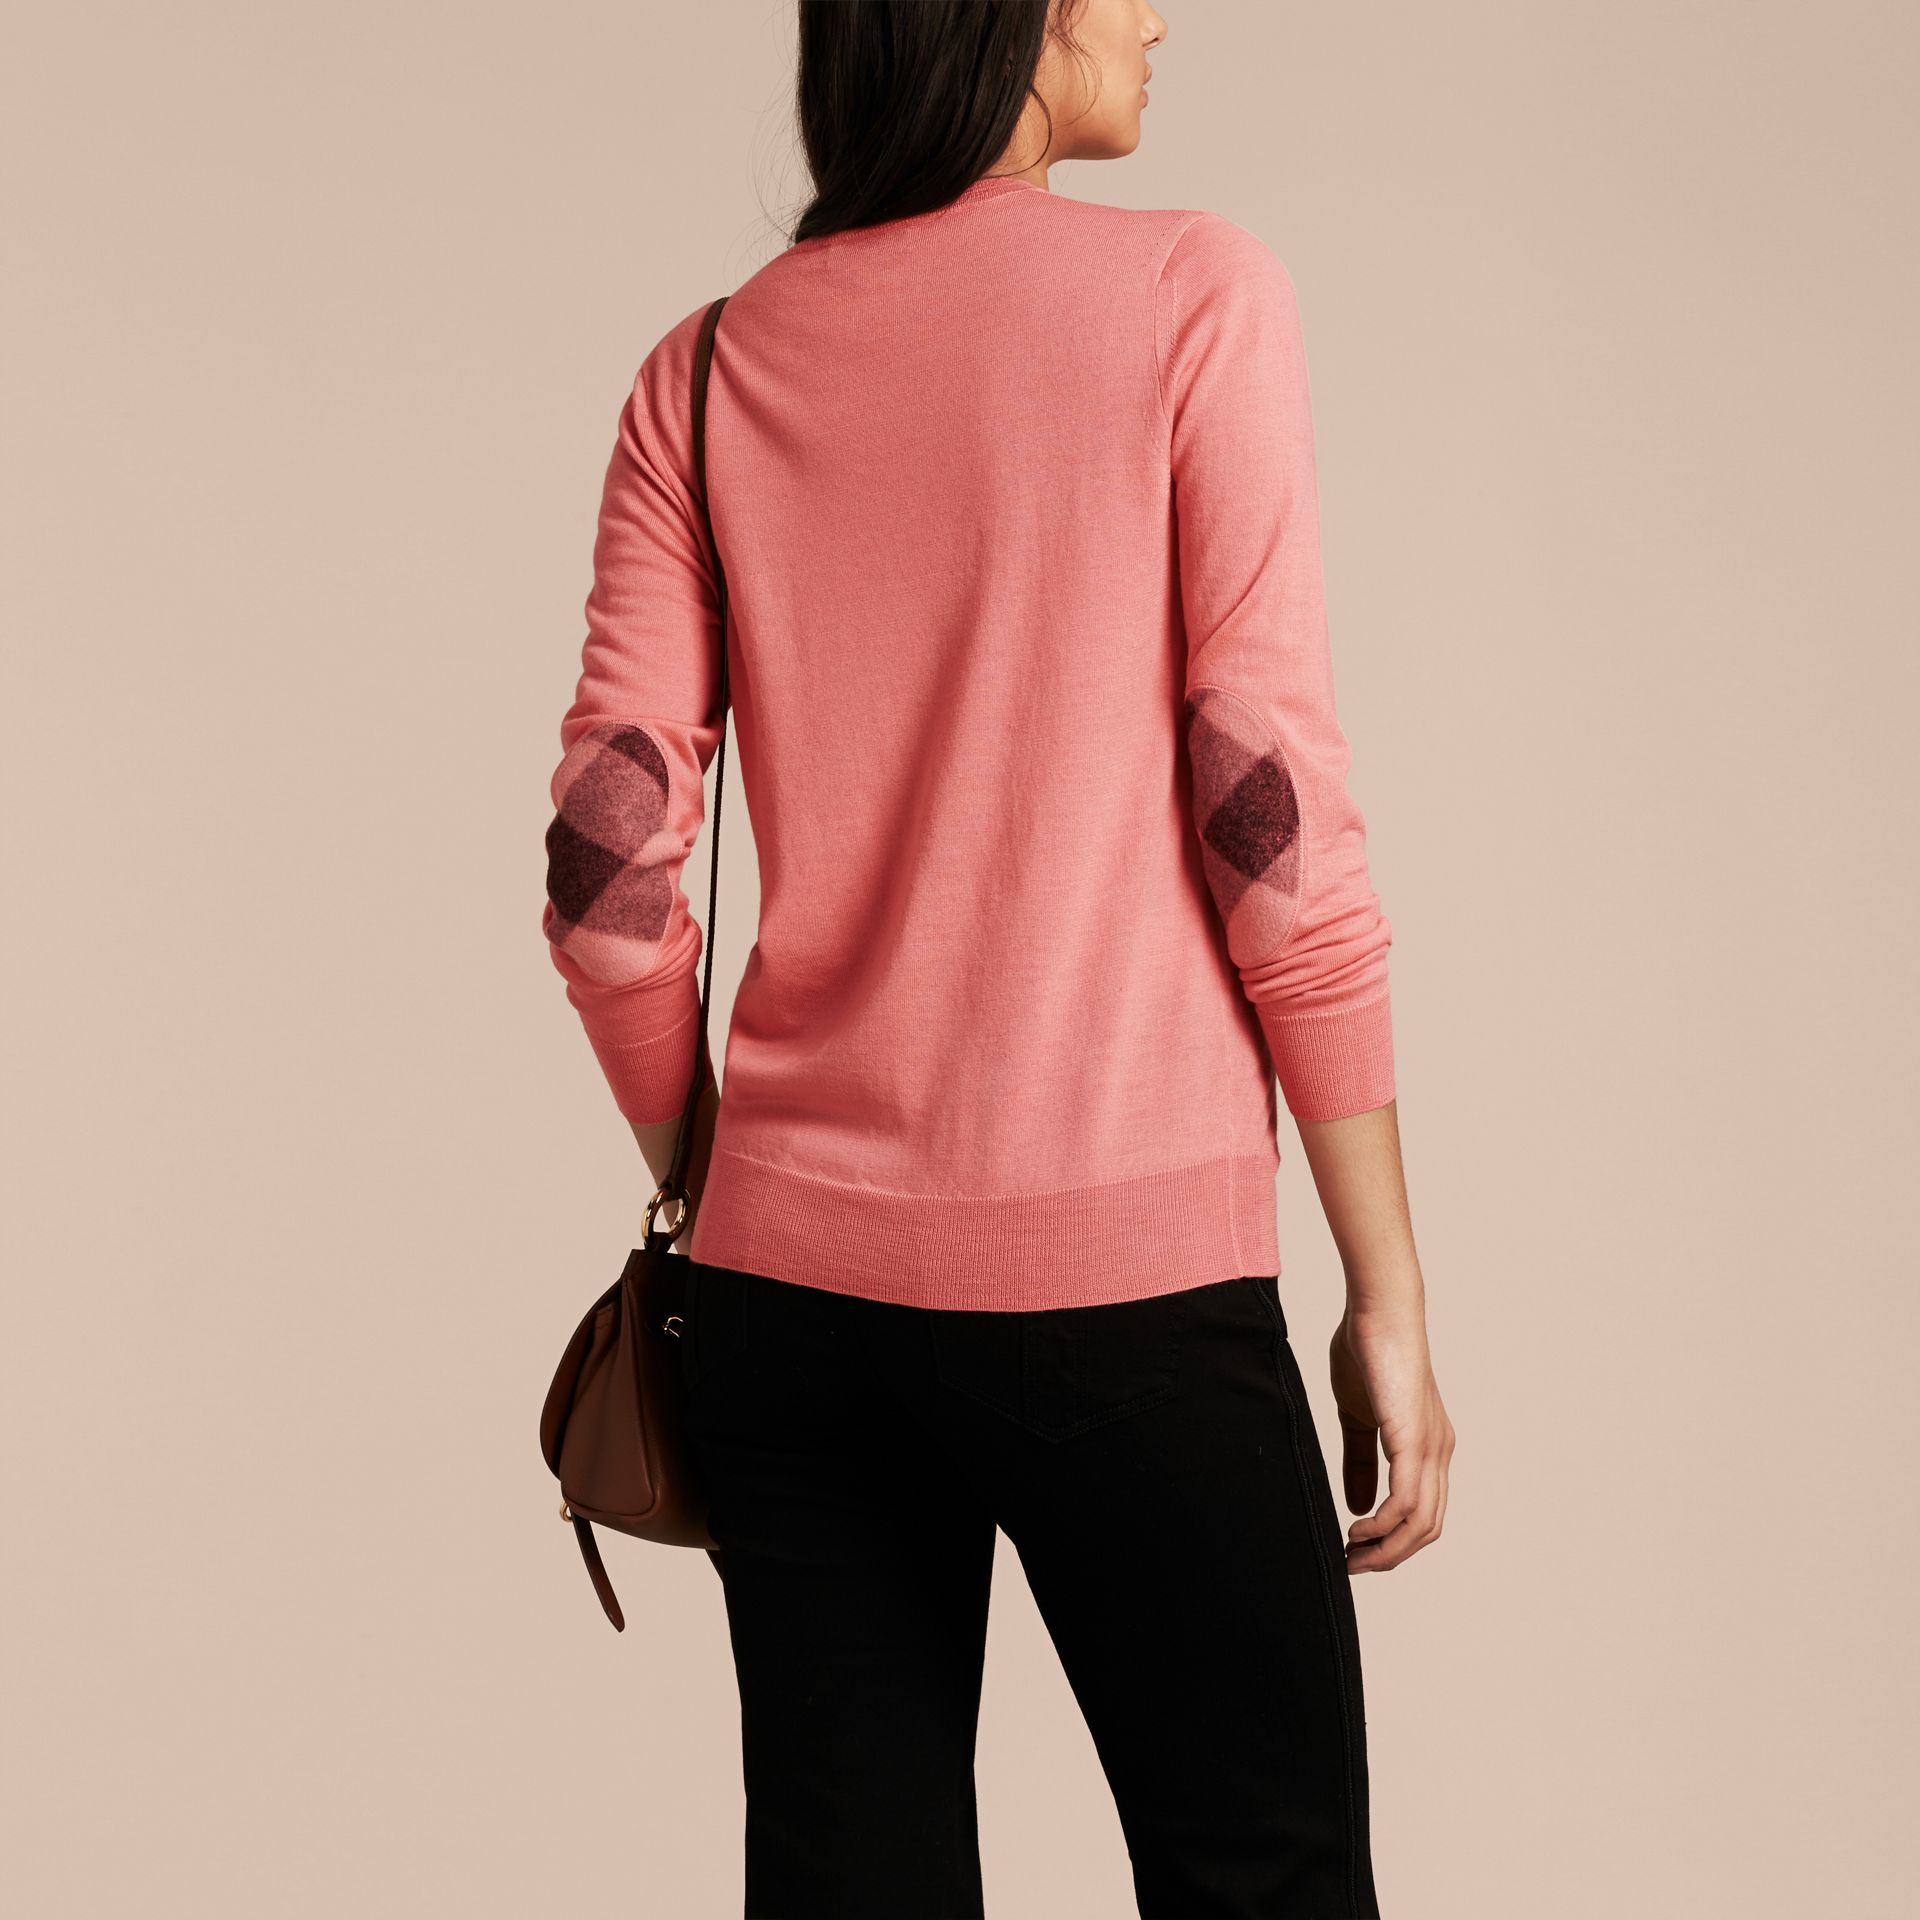 Pale rose pink Check Detail Merino Wool Crew Neck Sweater Pale Rose Pink - gallery image 3